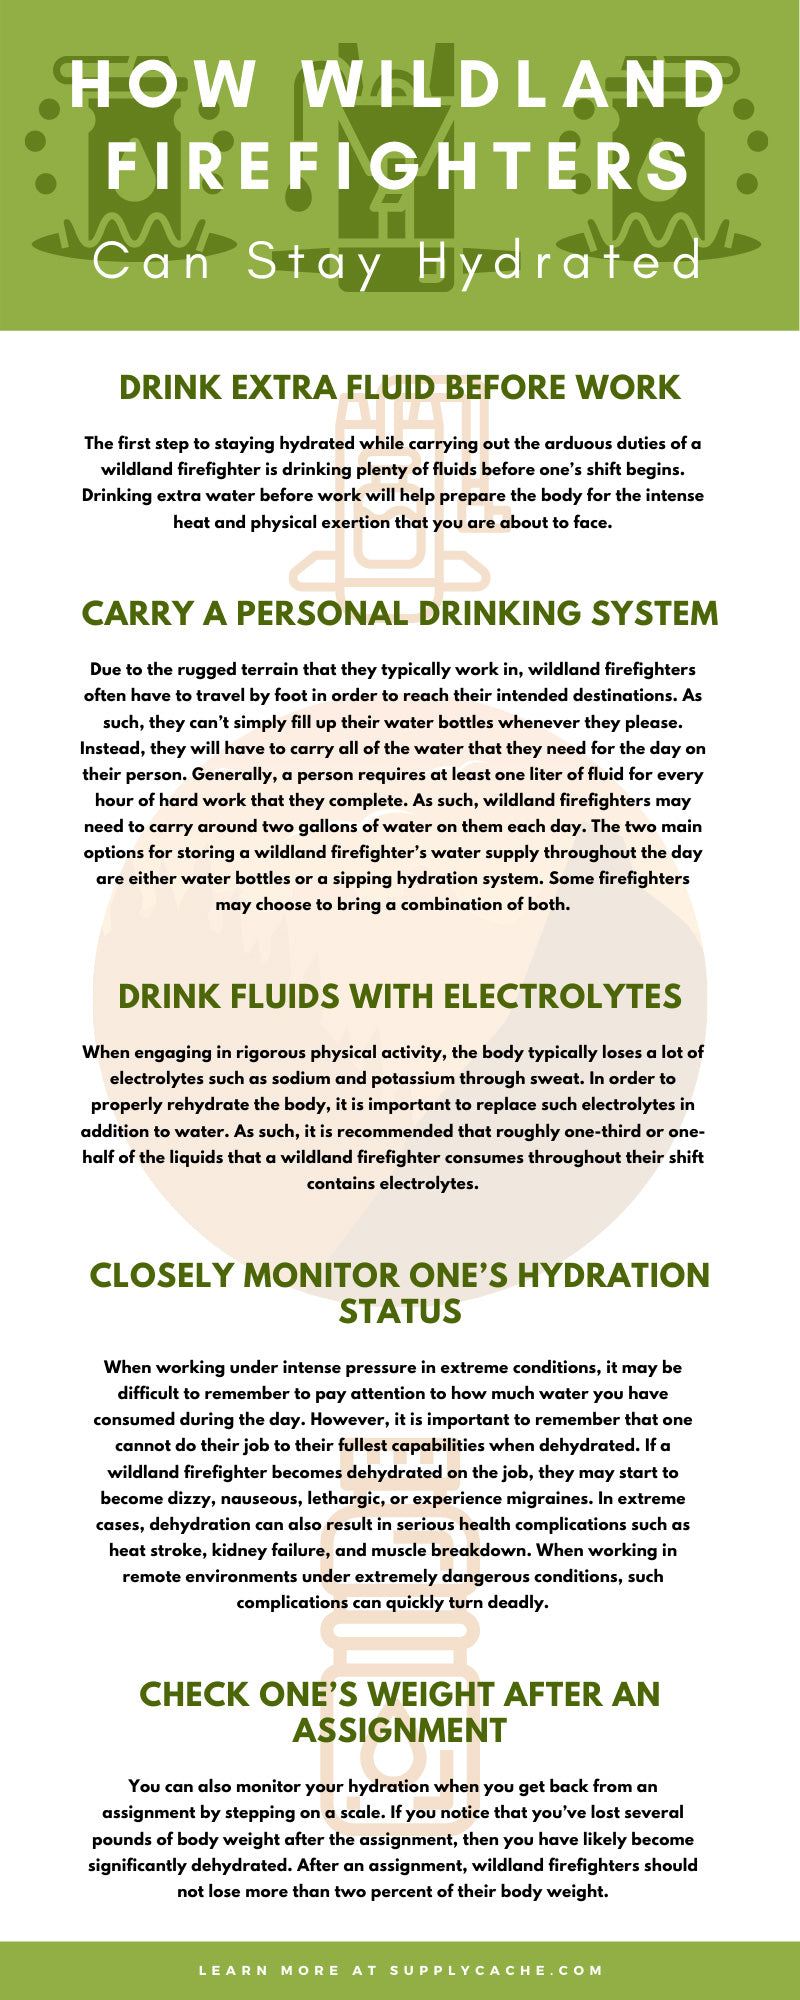 Firefighters Can Stay Hydrated